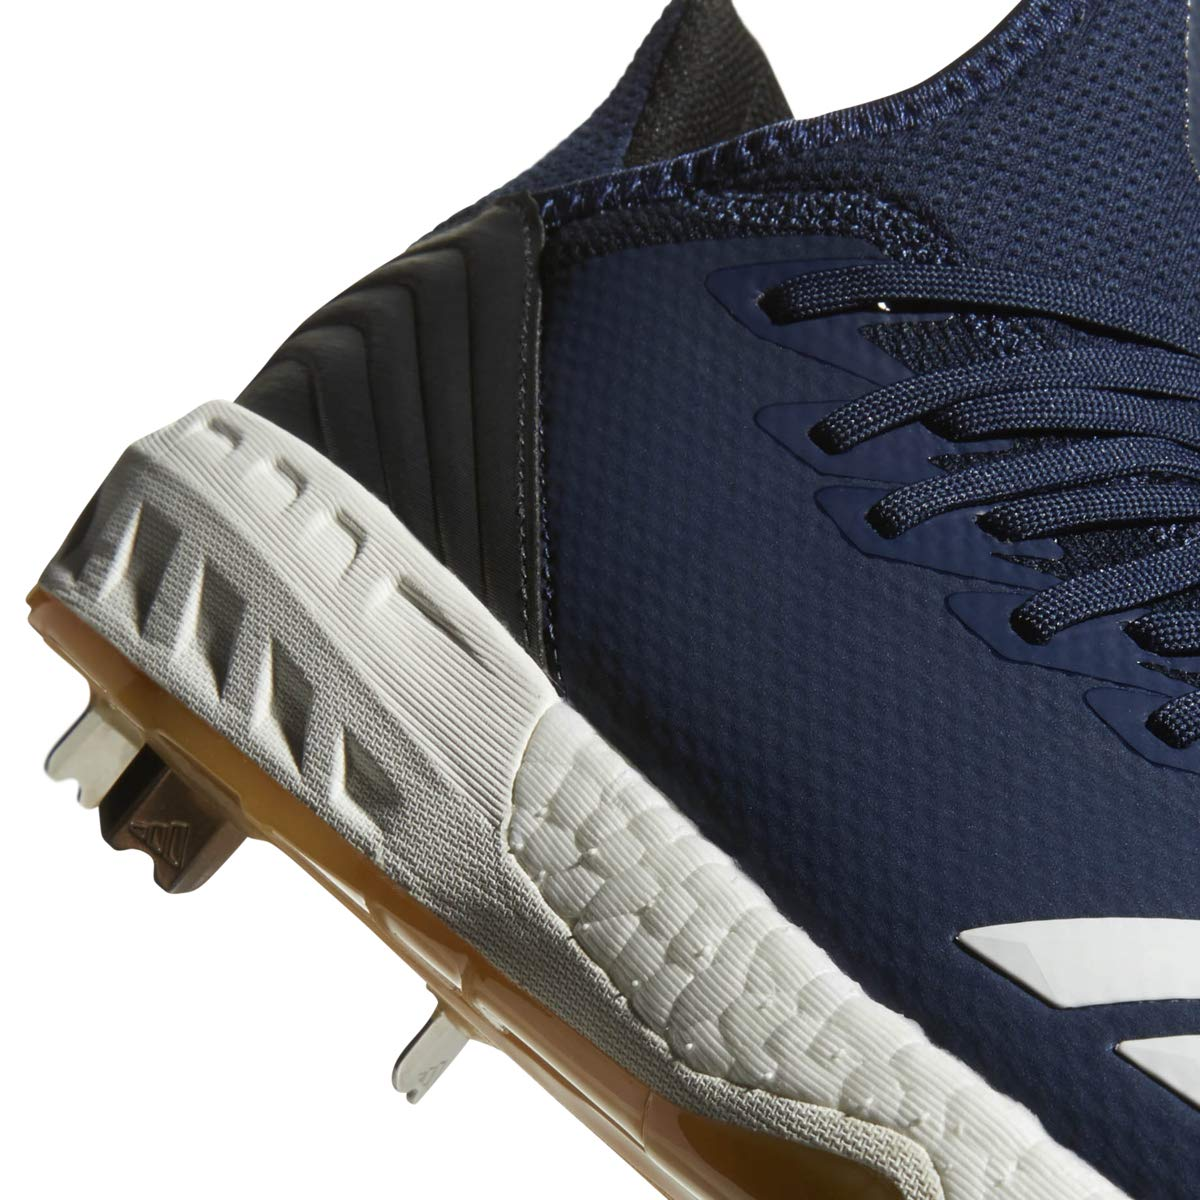 adidas Icon 4 Cleat - Men's Baseball 8 Collegiate Navy/White/Black by adidas (Image #5)